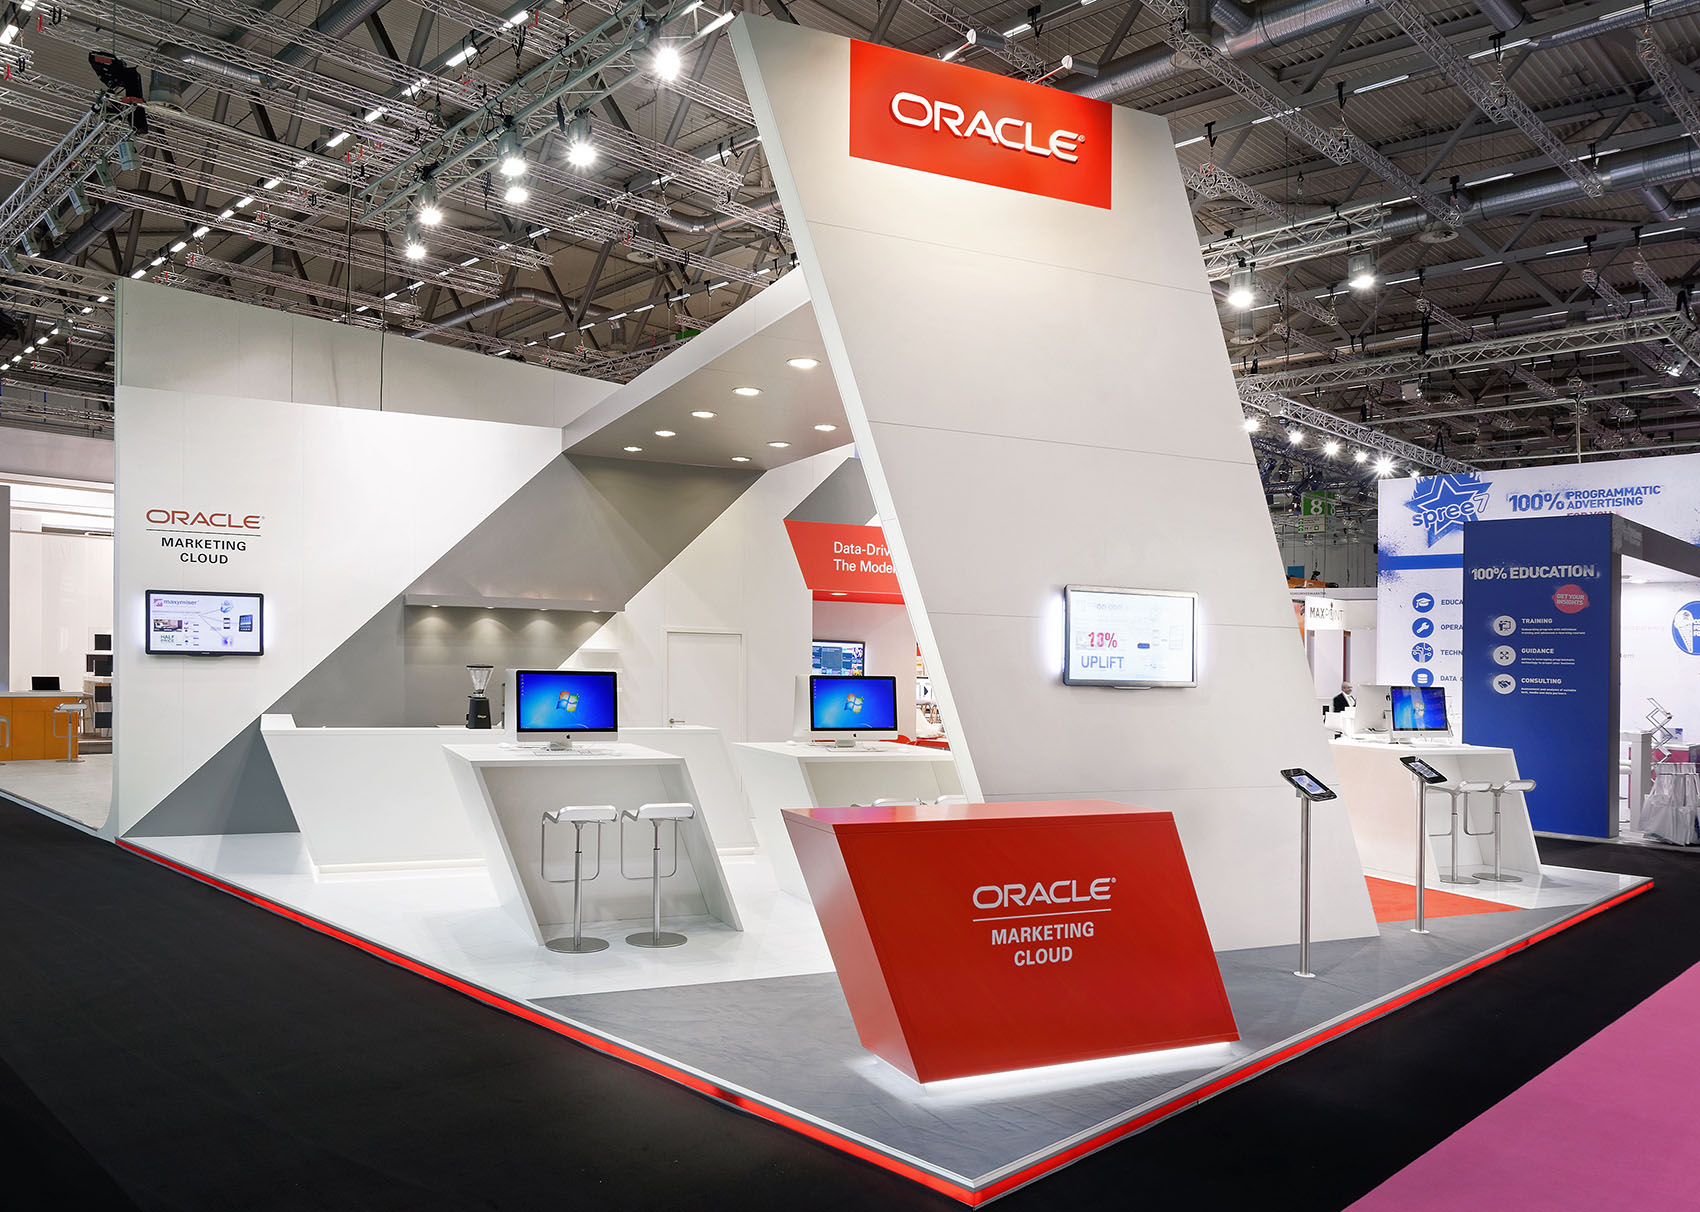 Simple Exhibition Stand Near Me : Oracle blickfang messebau gmbh